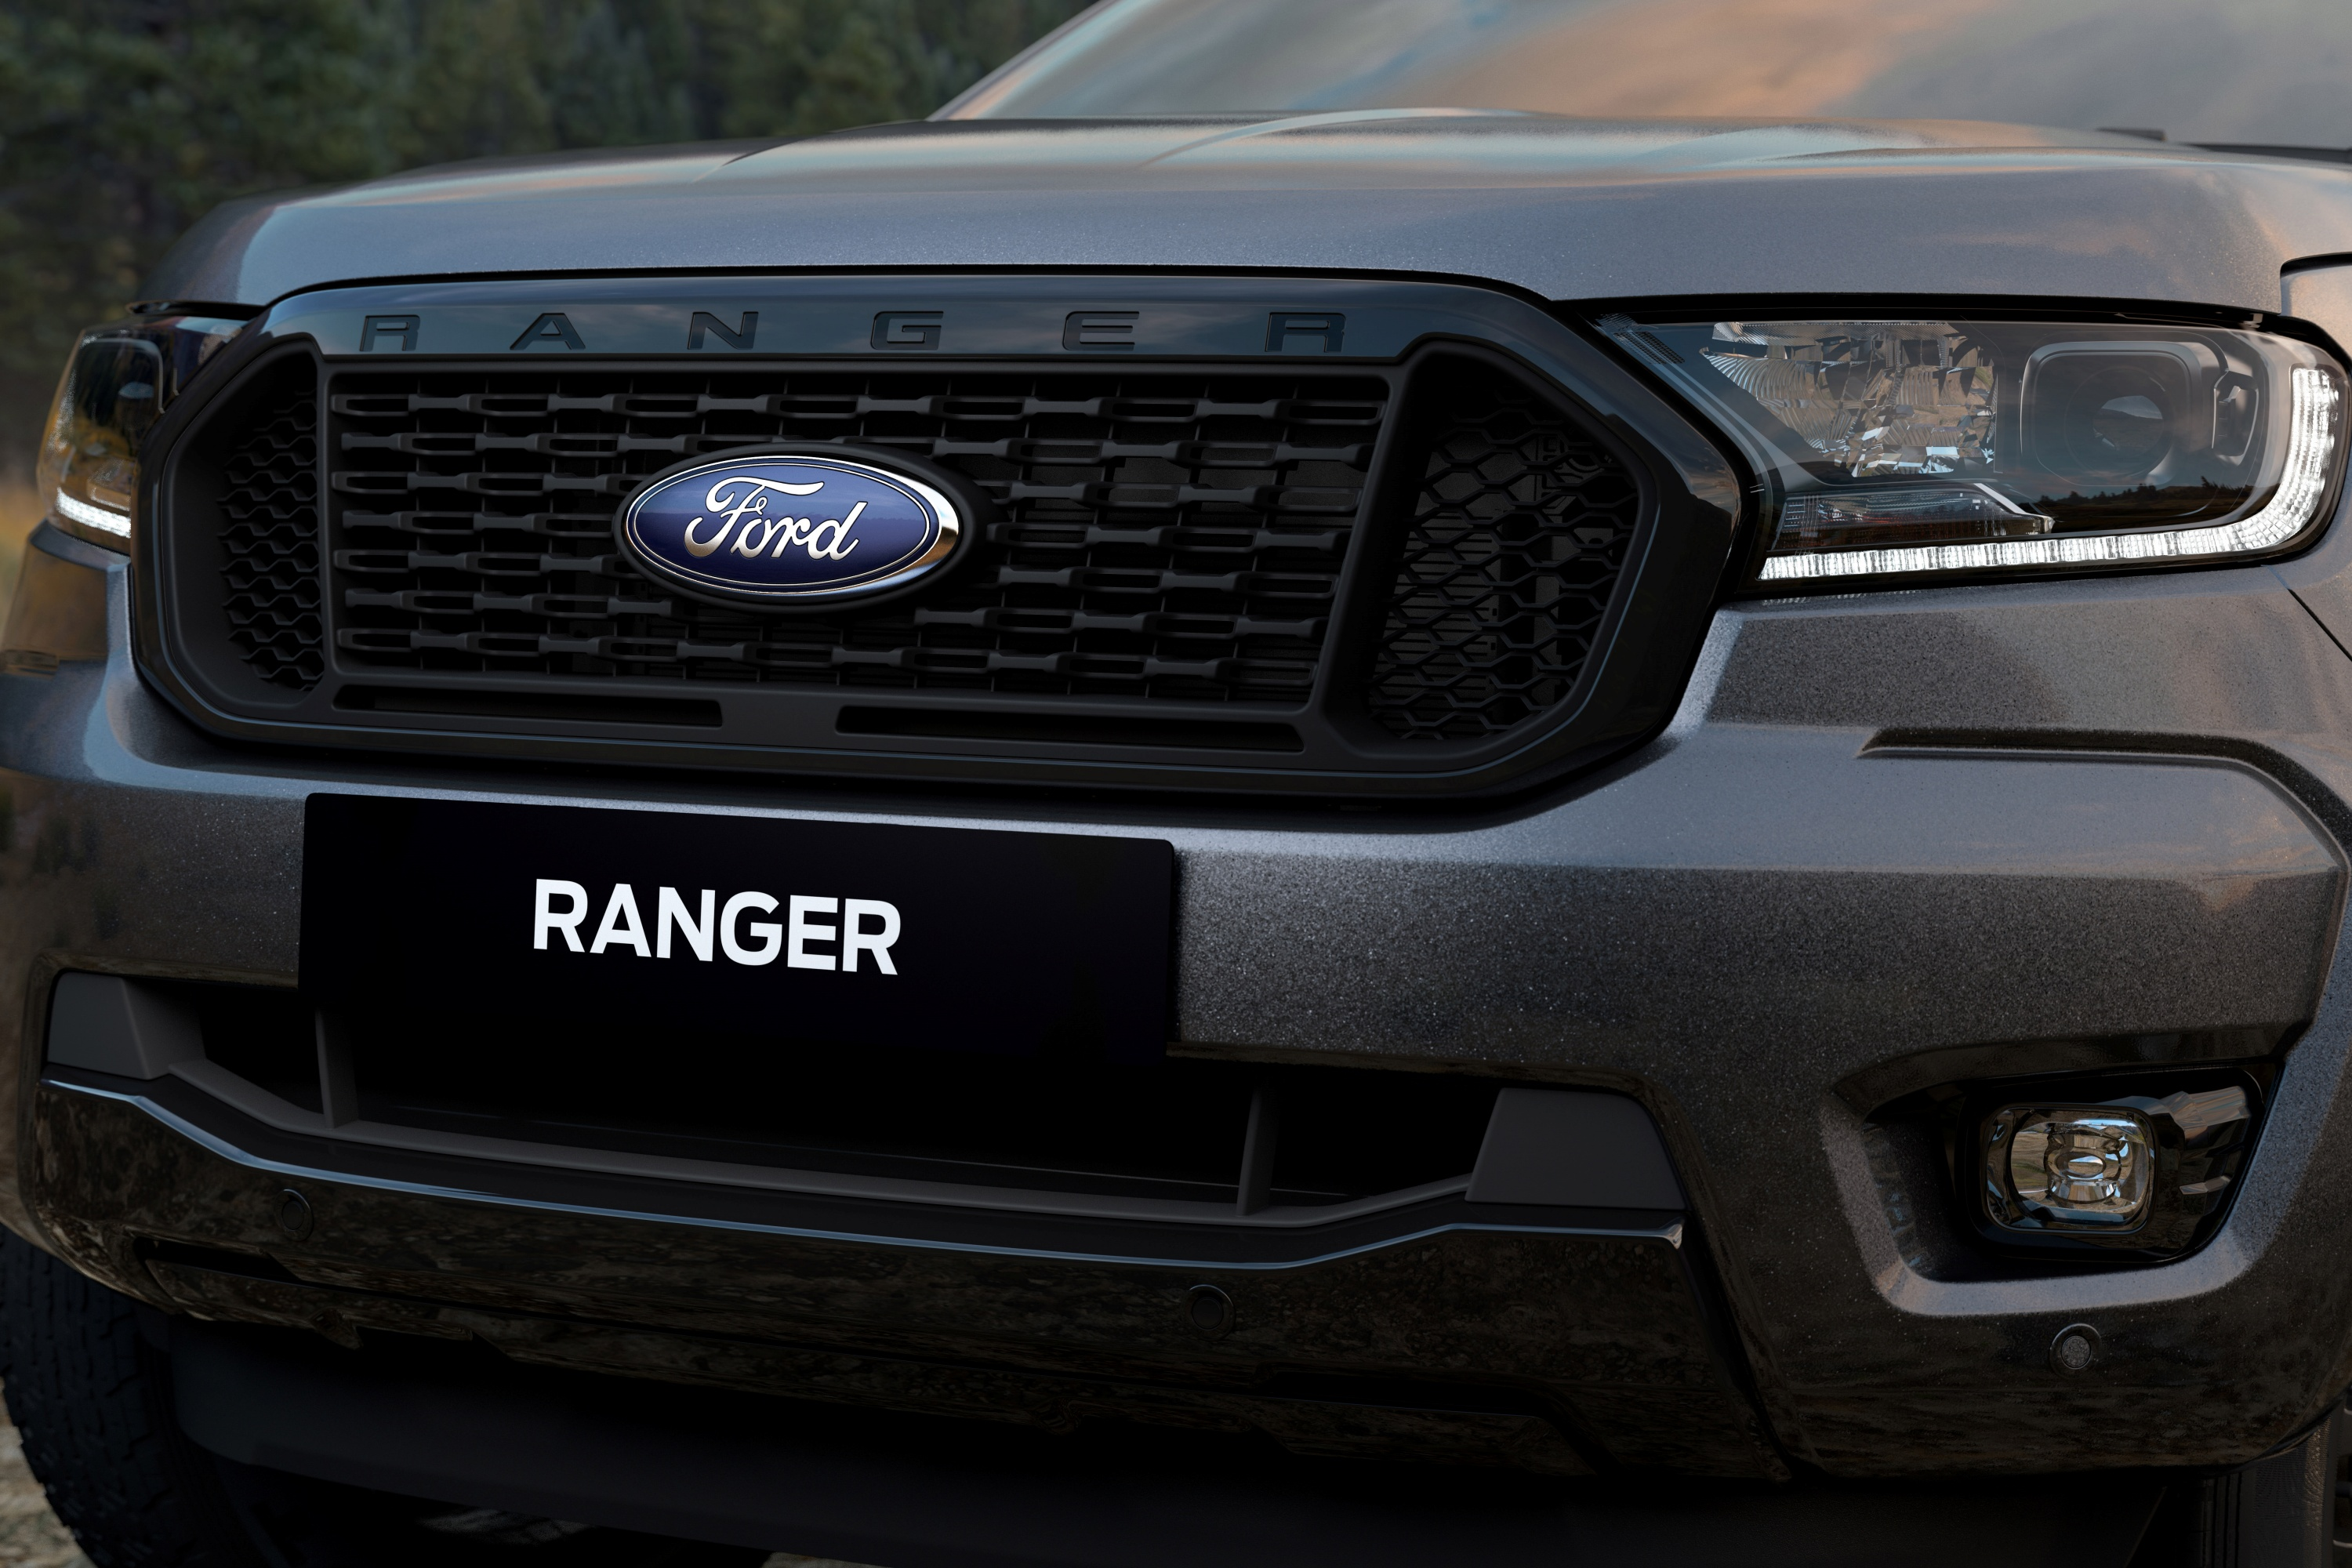 Ford Ranger FX4 Special Edition bonnet